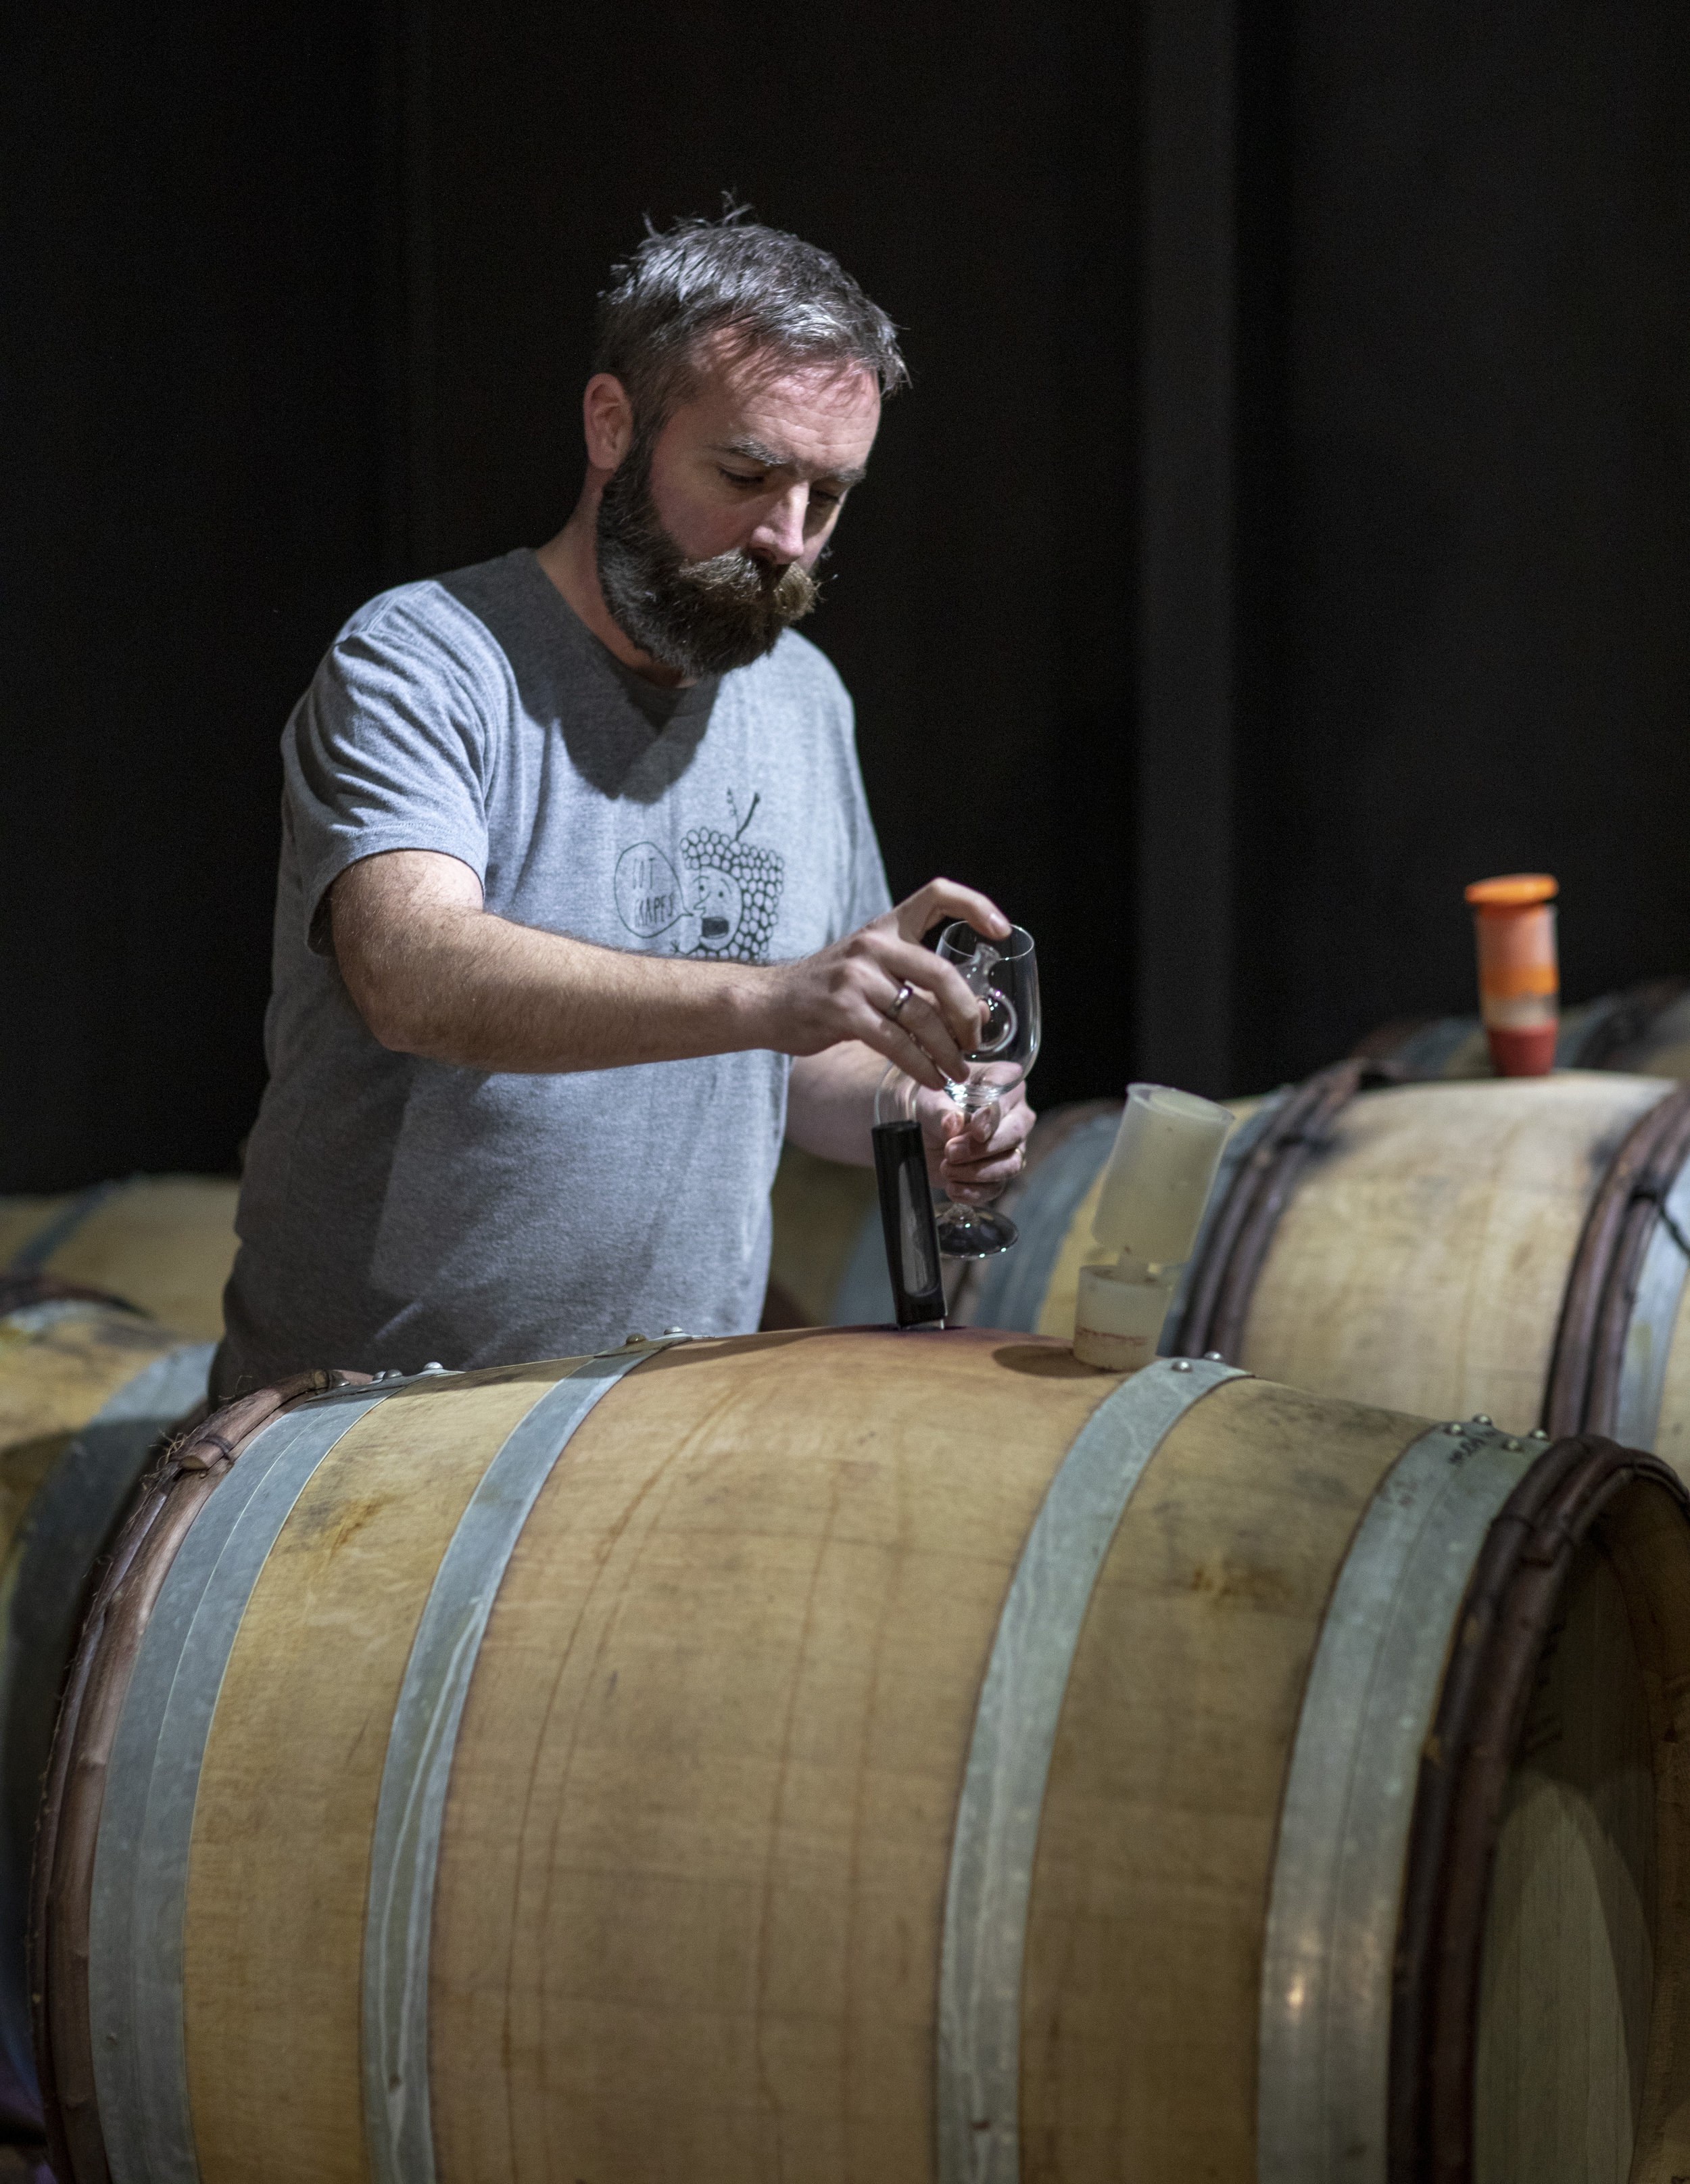 Keith tasting the barrels